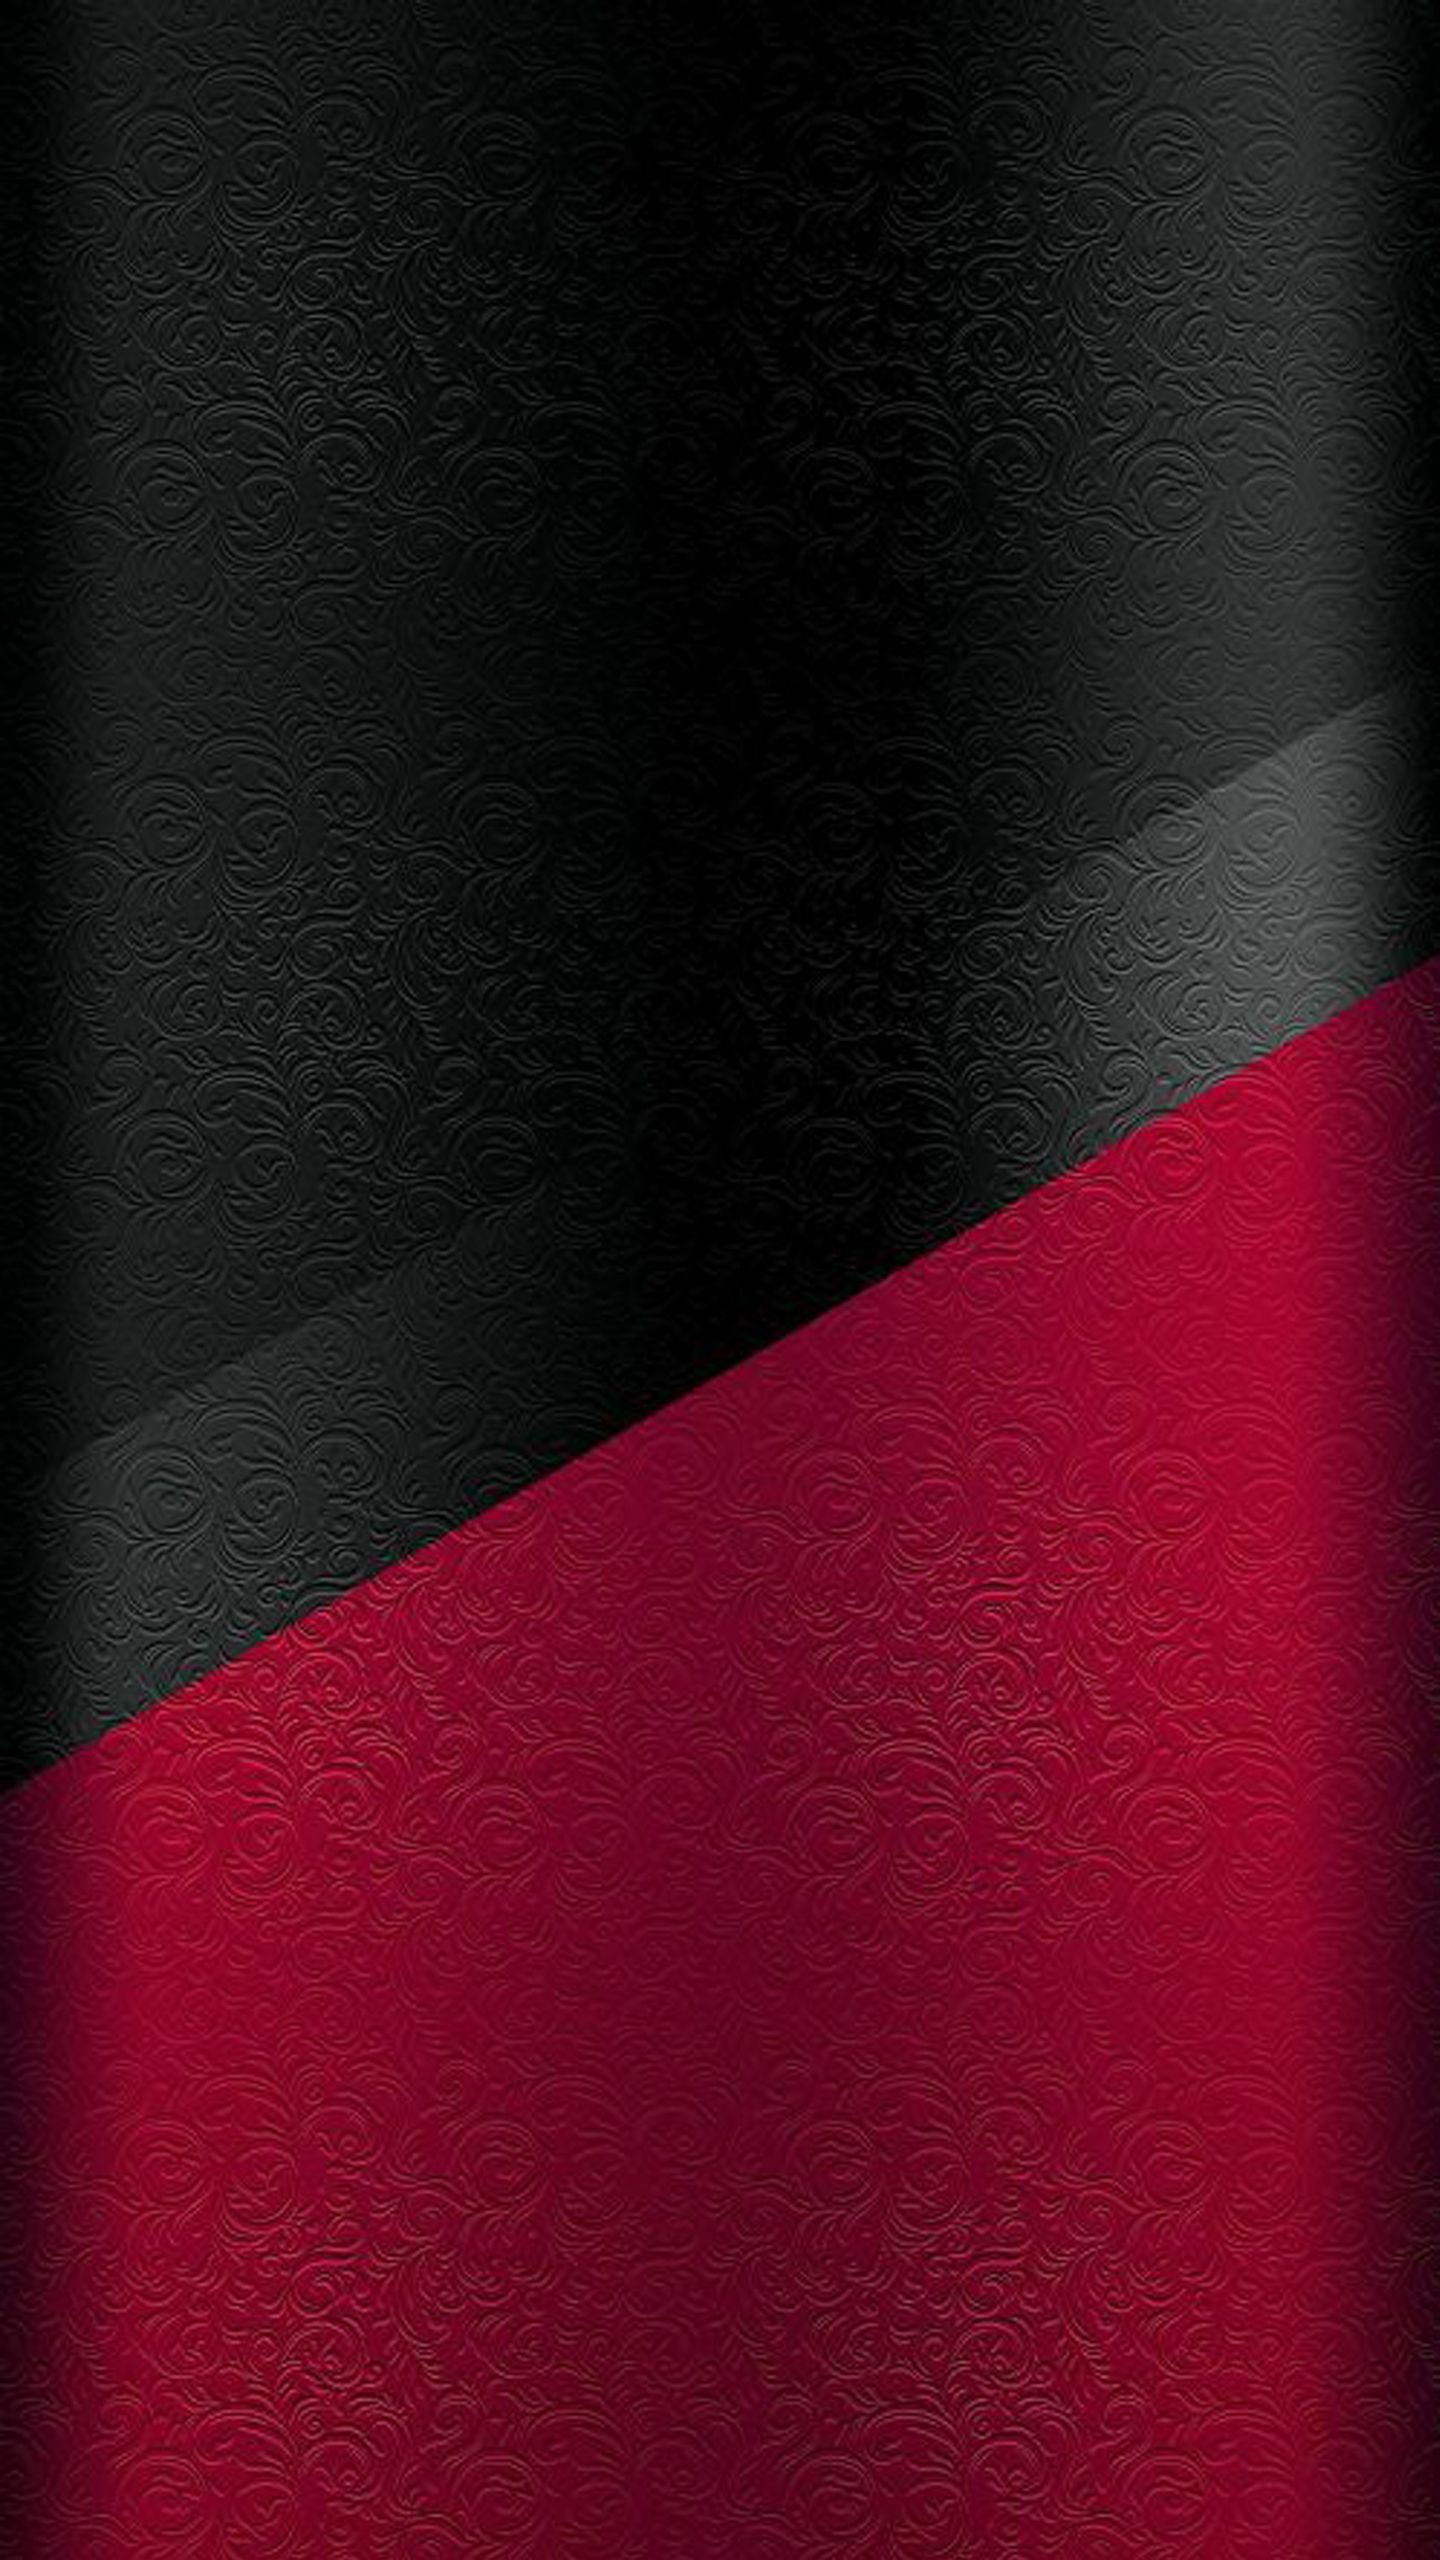 Dark S7 Edge Wallpaper 04 Black And Red Floral Pattern More